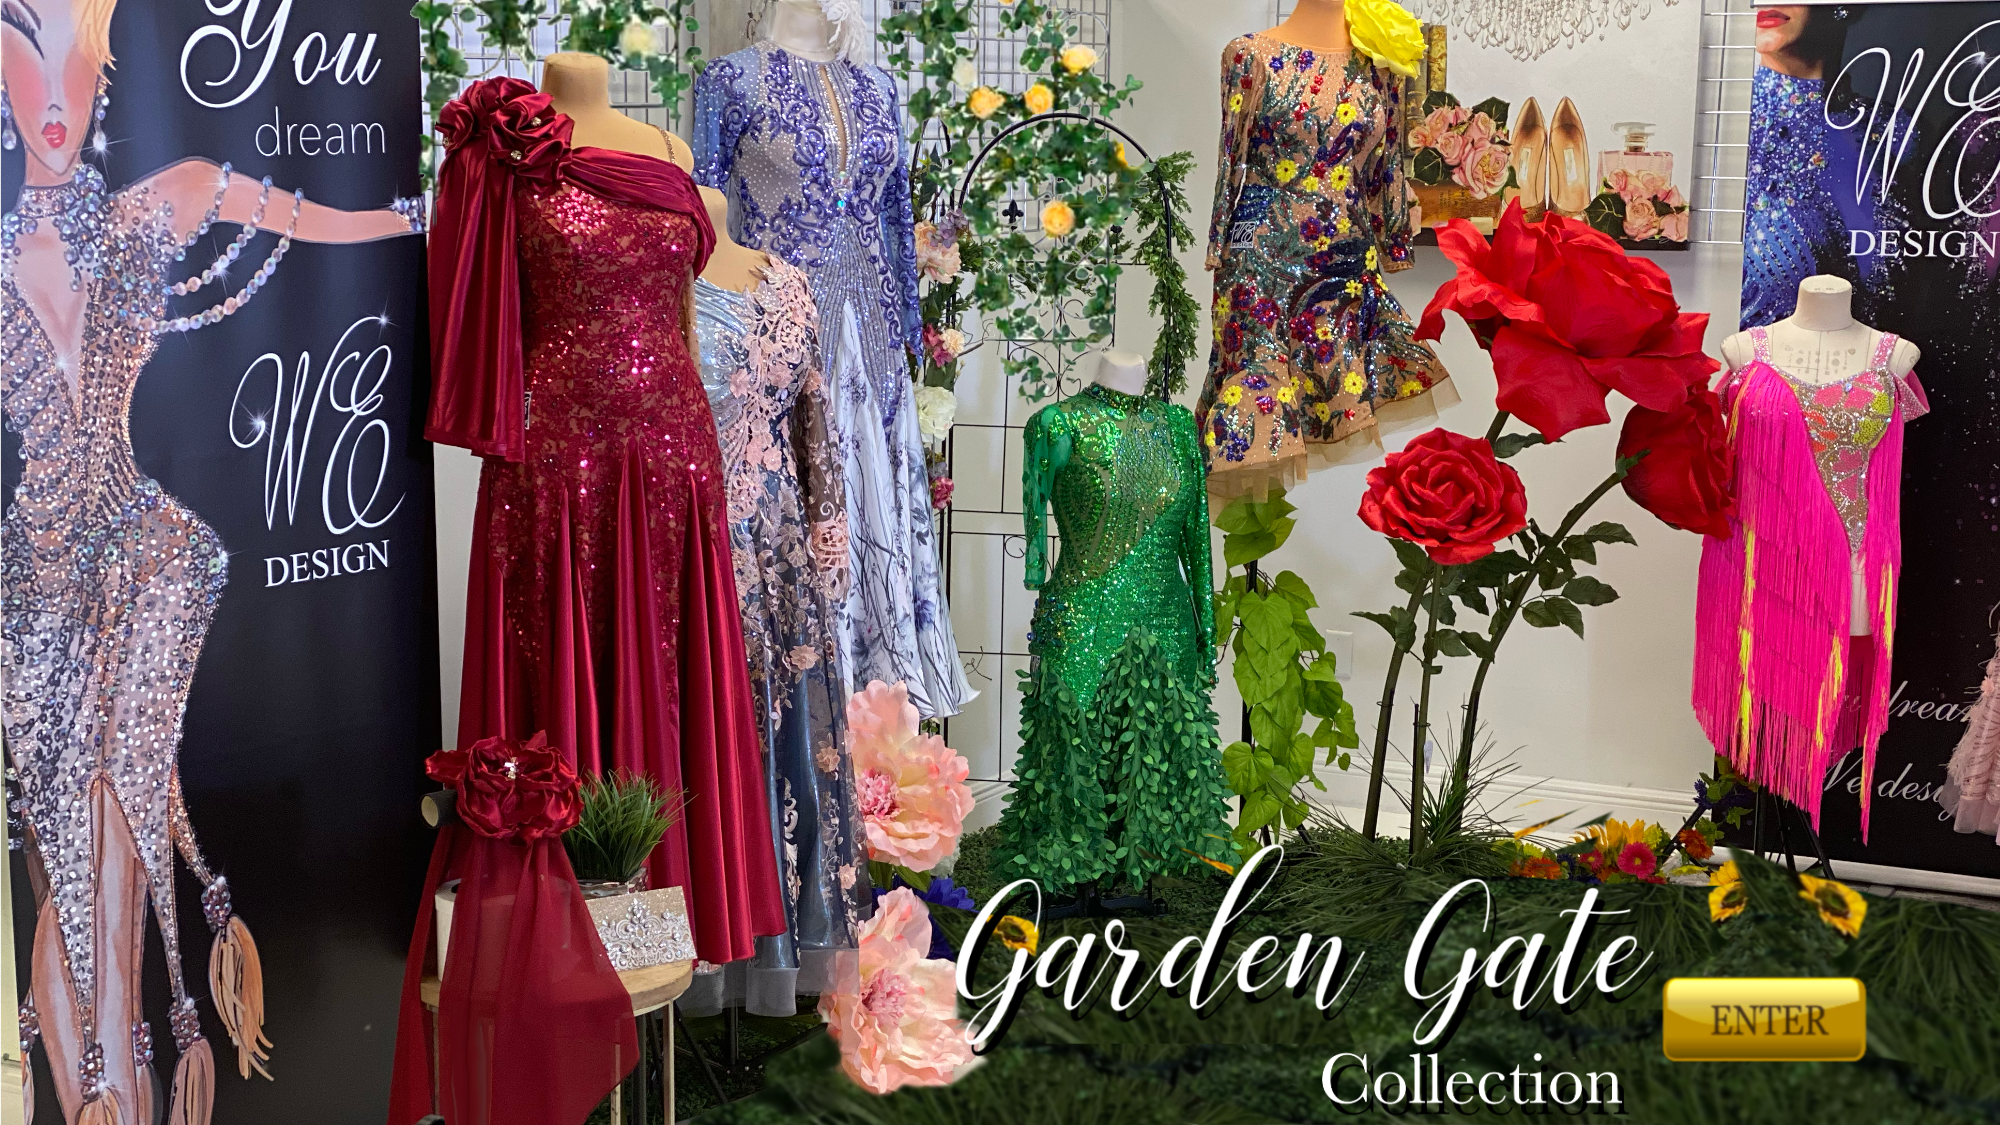 The Garden Gate Collection